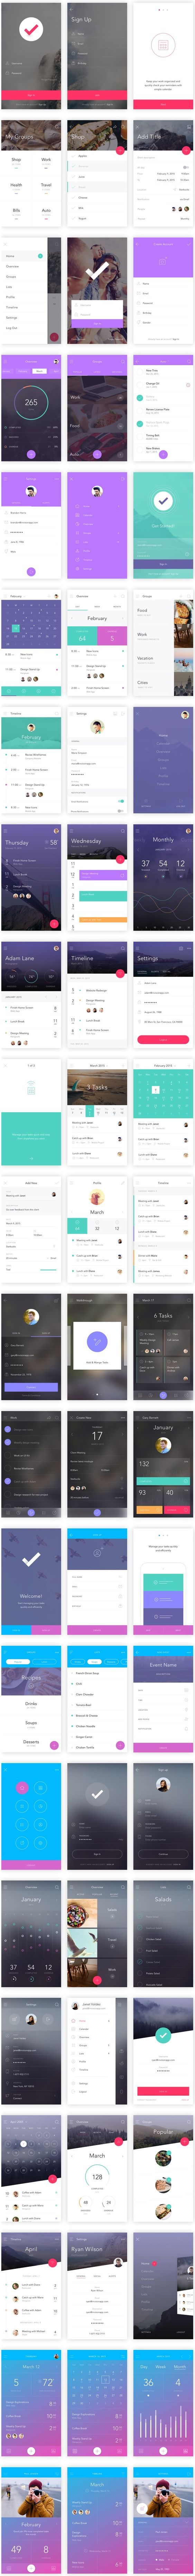 DO: Free App UI Kit For Photoshop & Sketch: